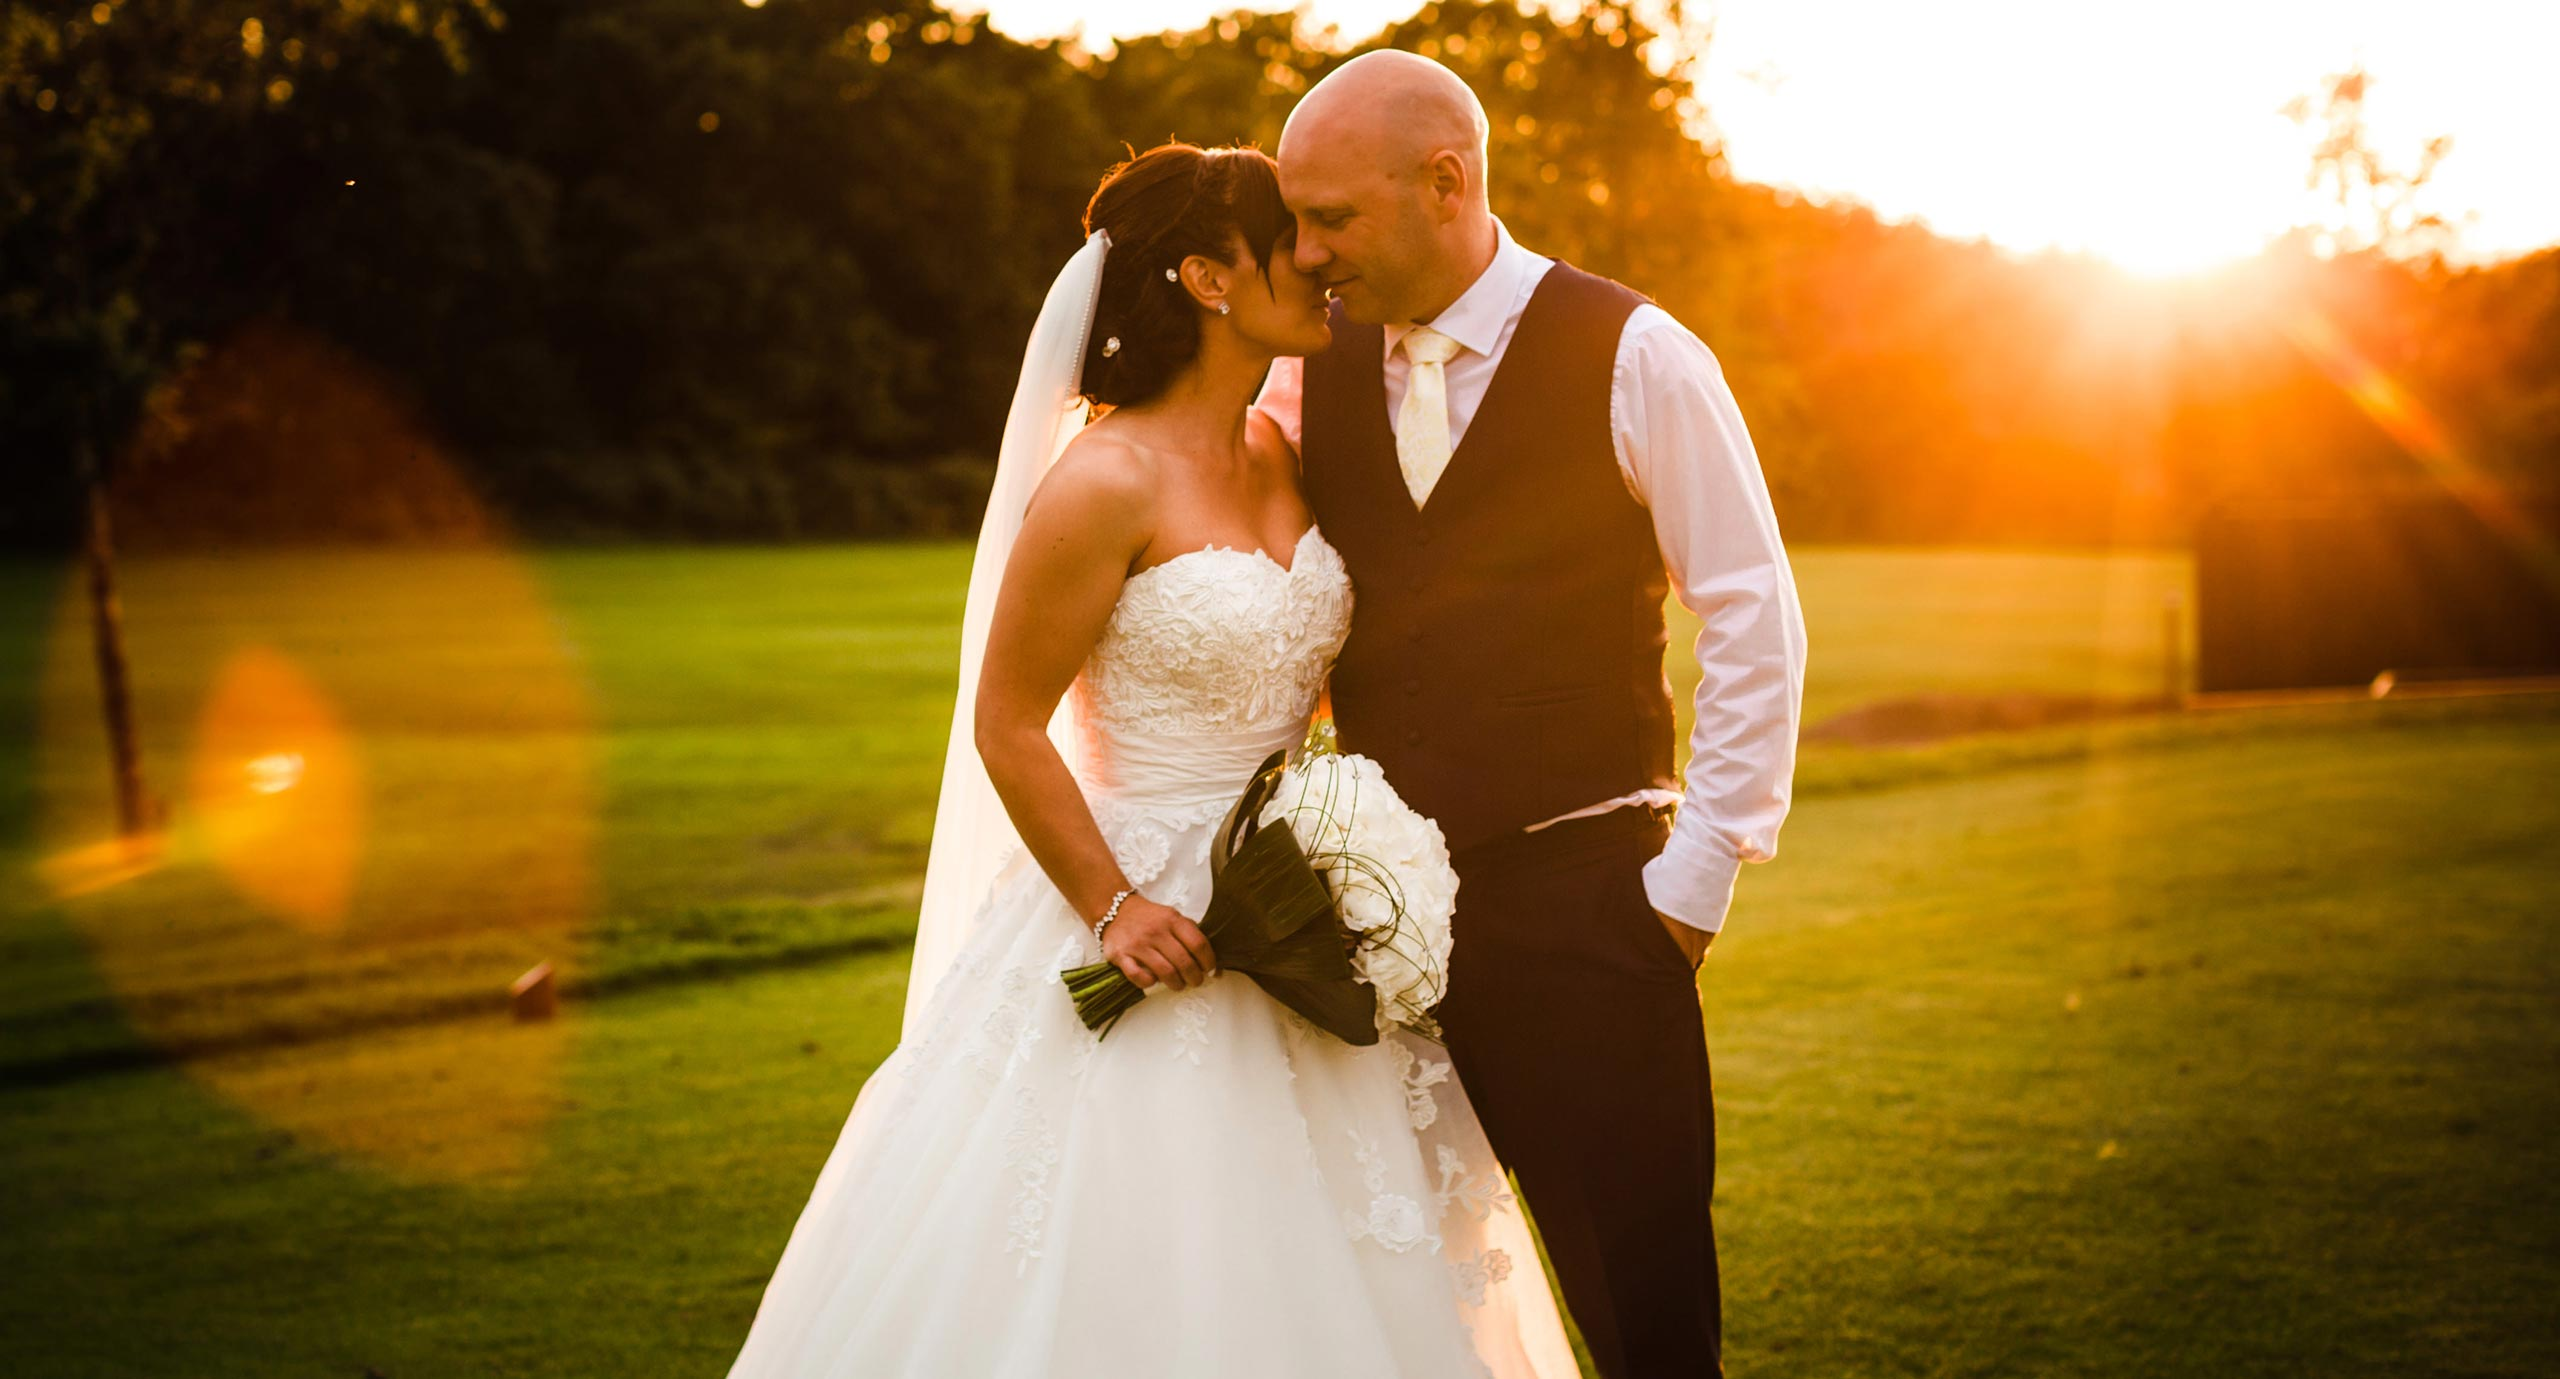 South-Wales-Wedding-Photographer-1